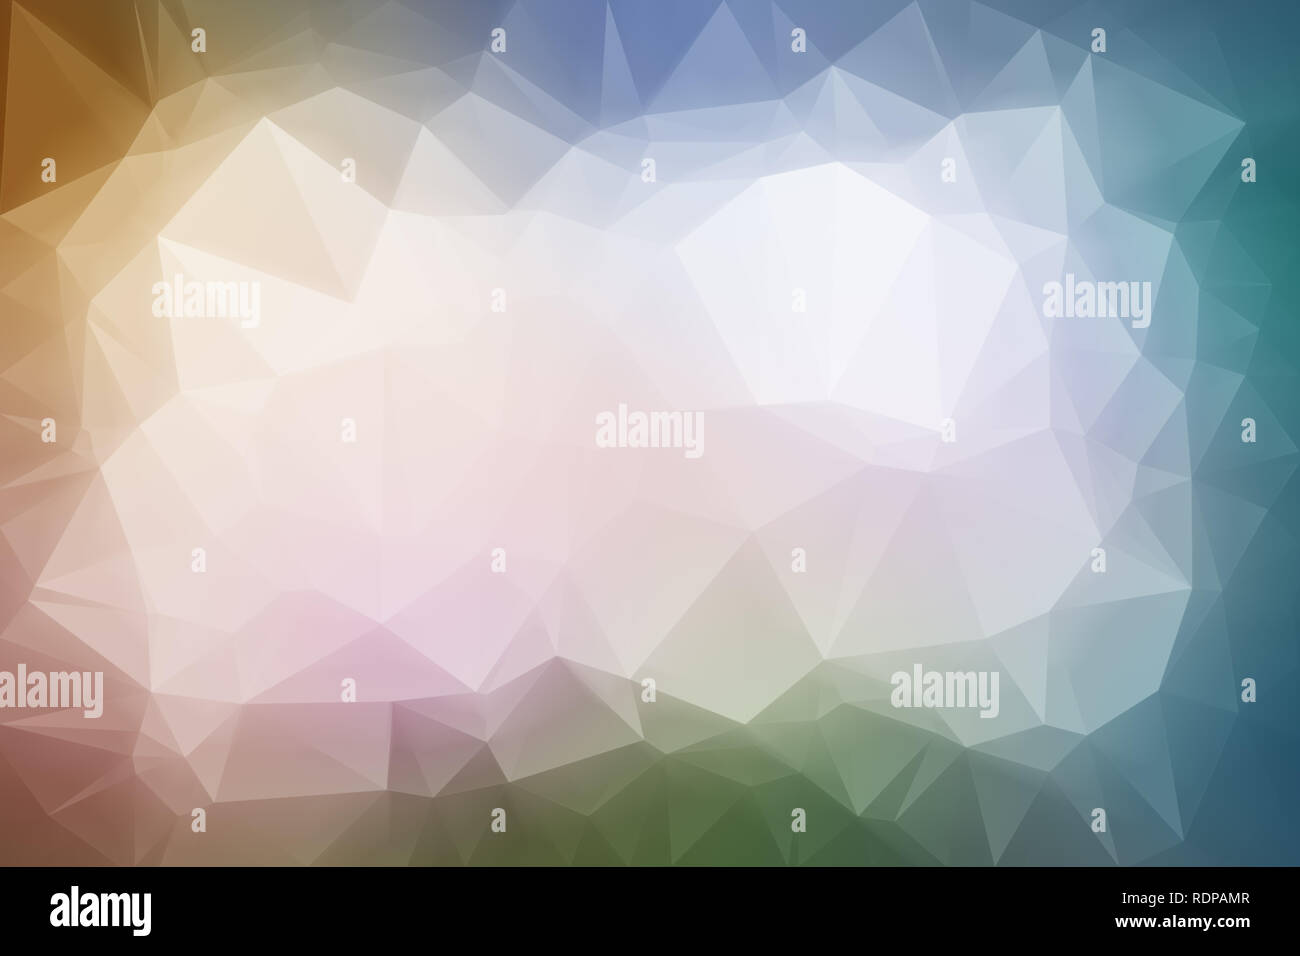 High resolution multi-colored polygon mosaic vector background. Abstract 3D triangular low poly style gradient background. Darker at the edges. - Stock Image